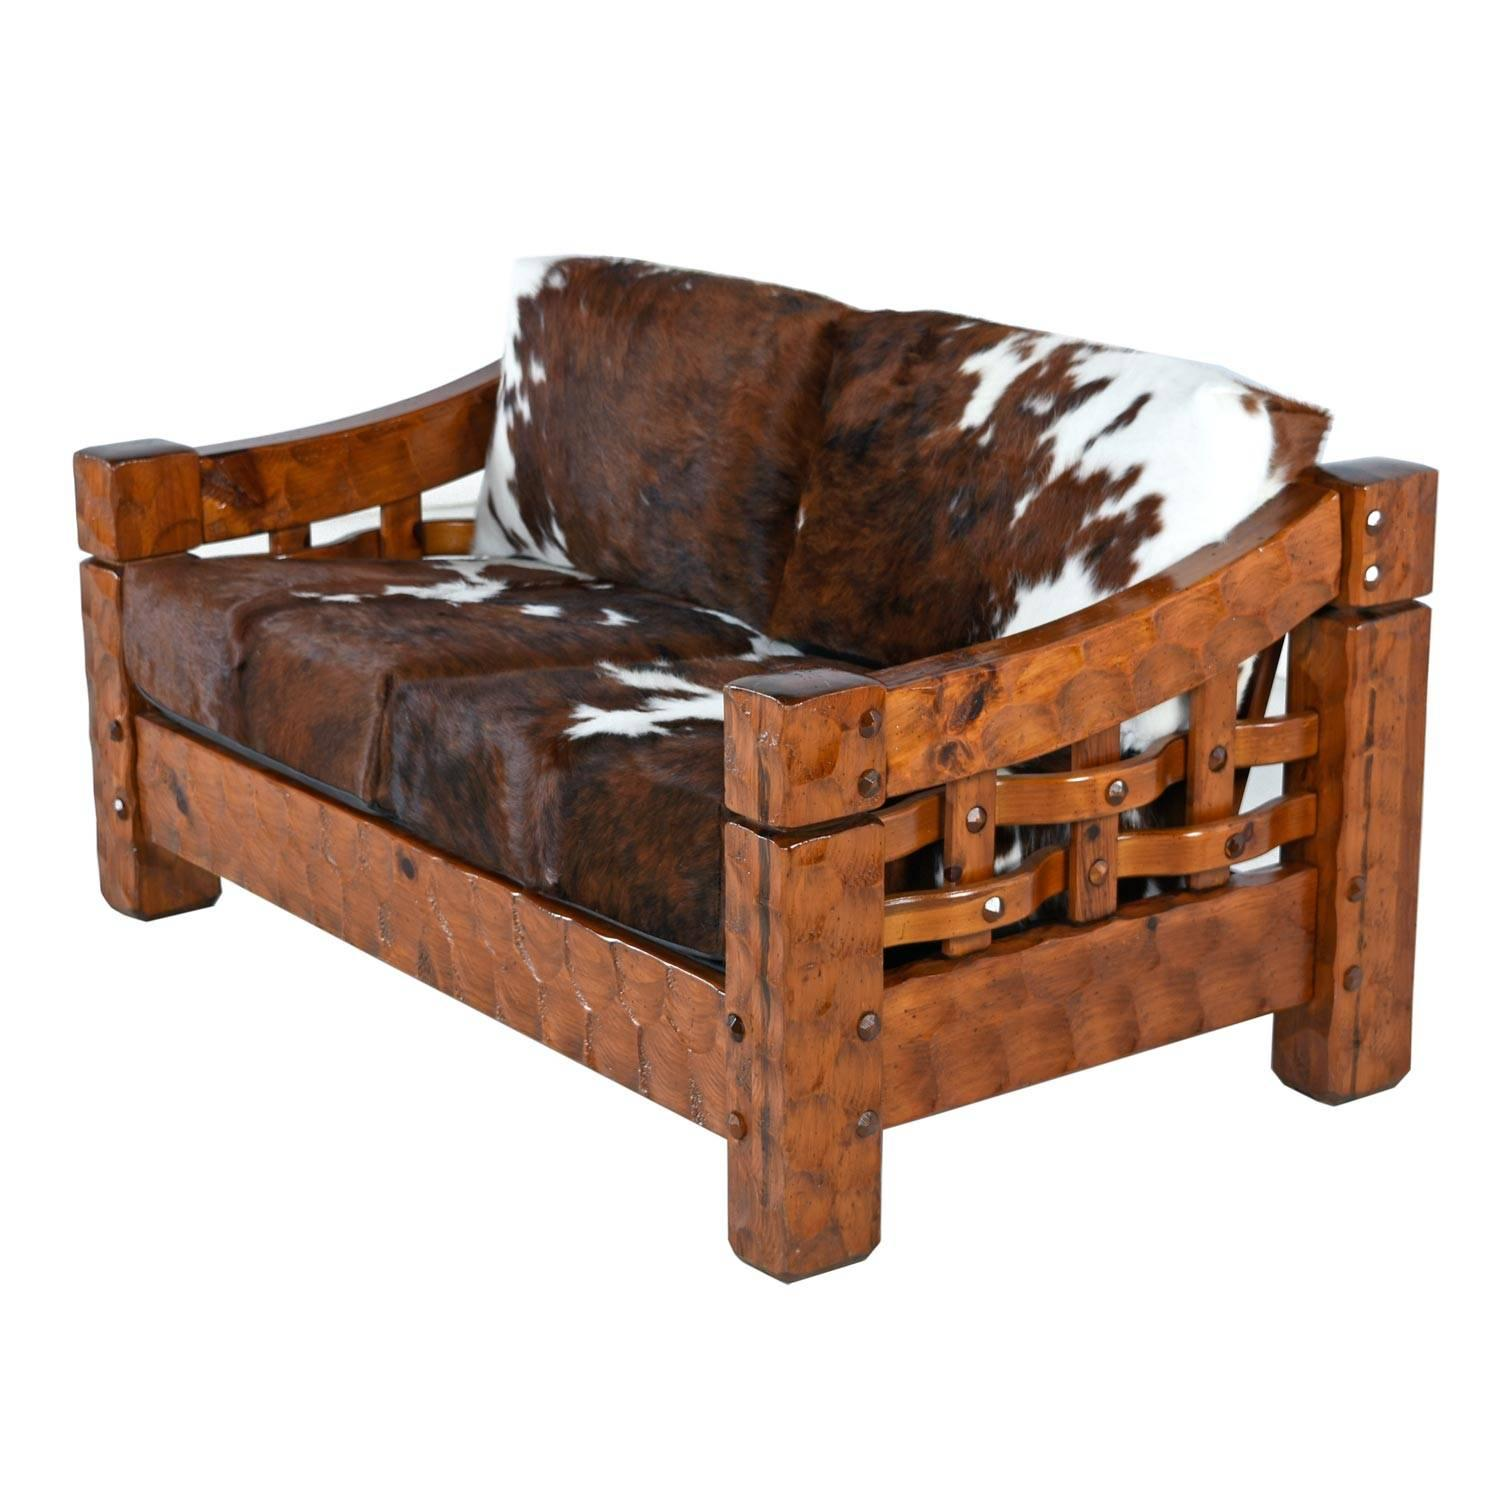 Rustic Modern Cowhide Leather Solid Pine Loveseat Sofa Settee By Null For  Sale At 1stdibs